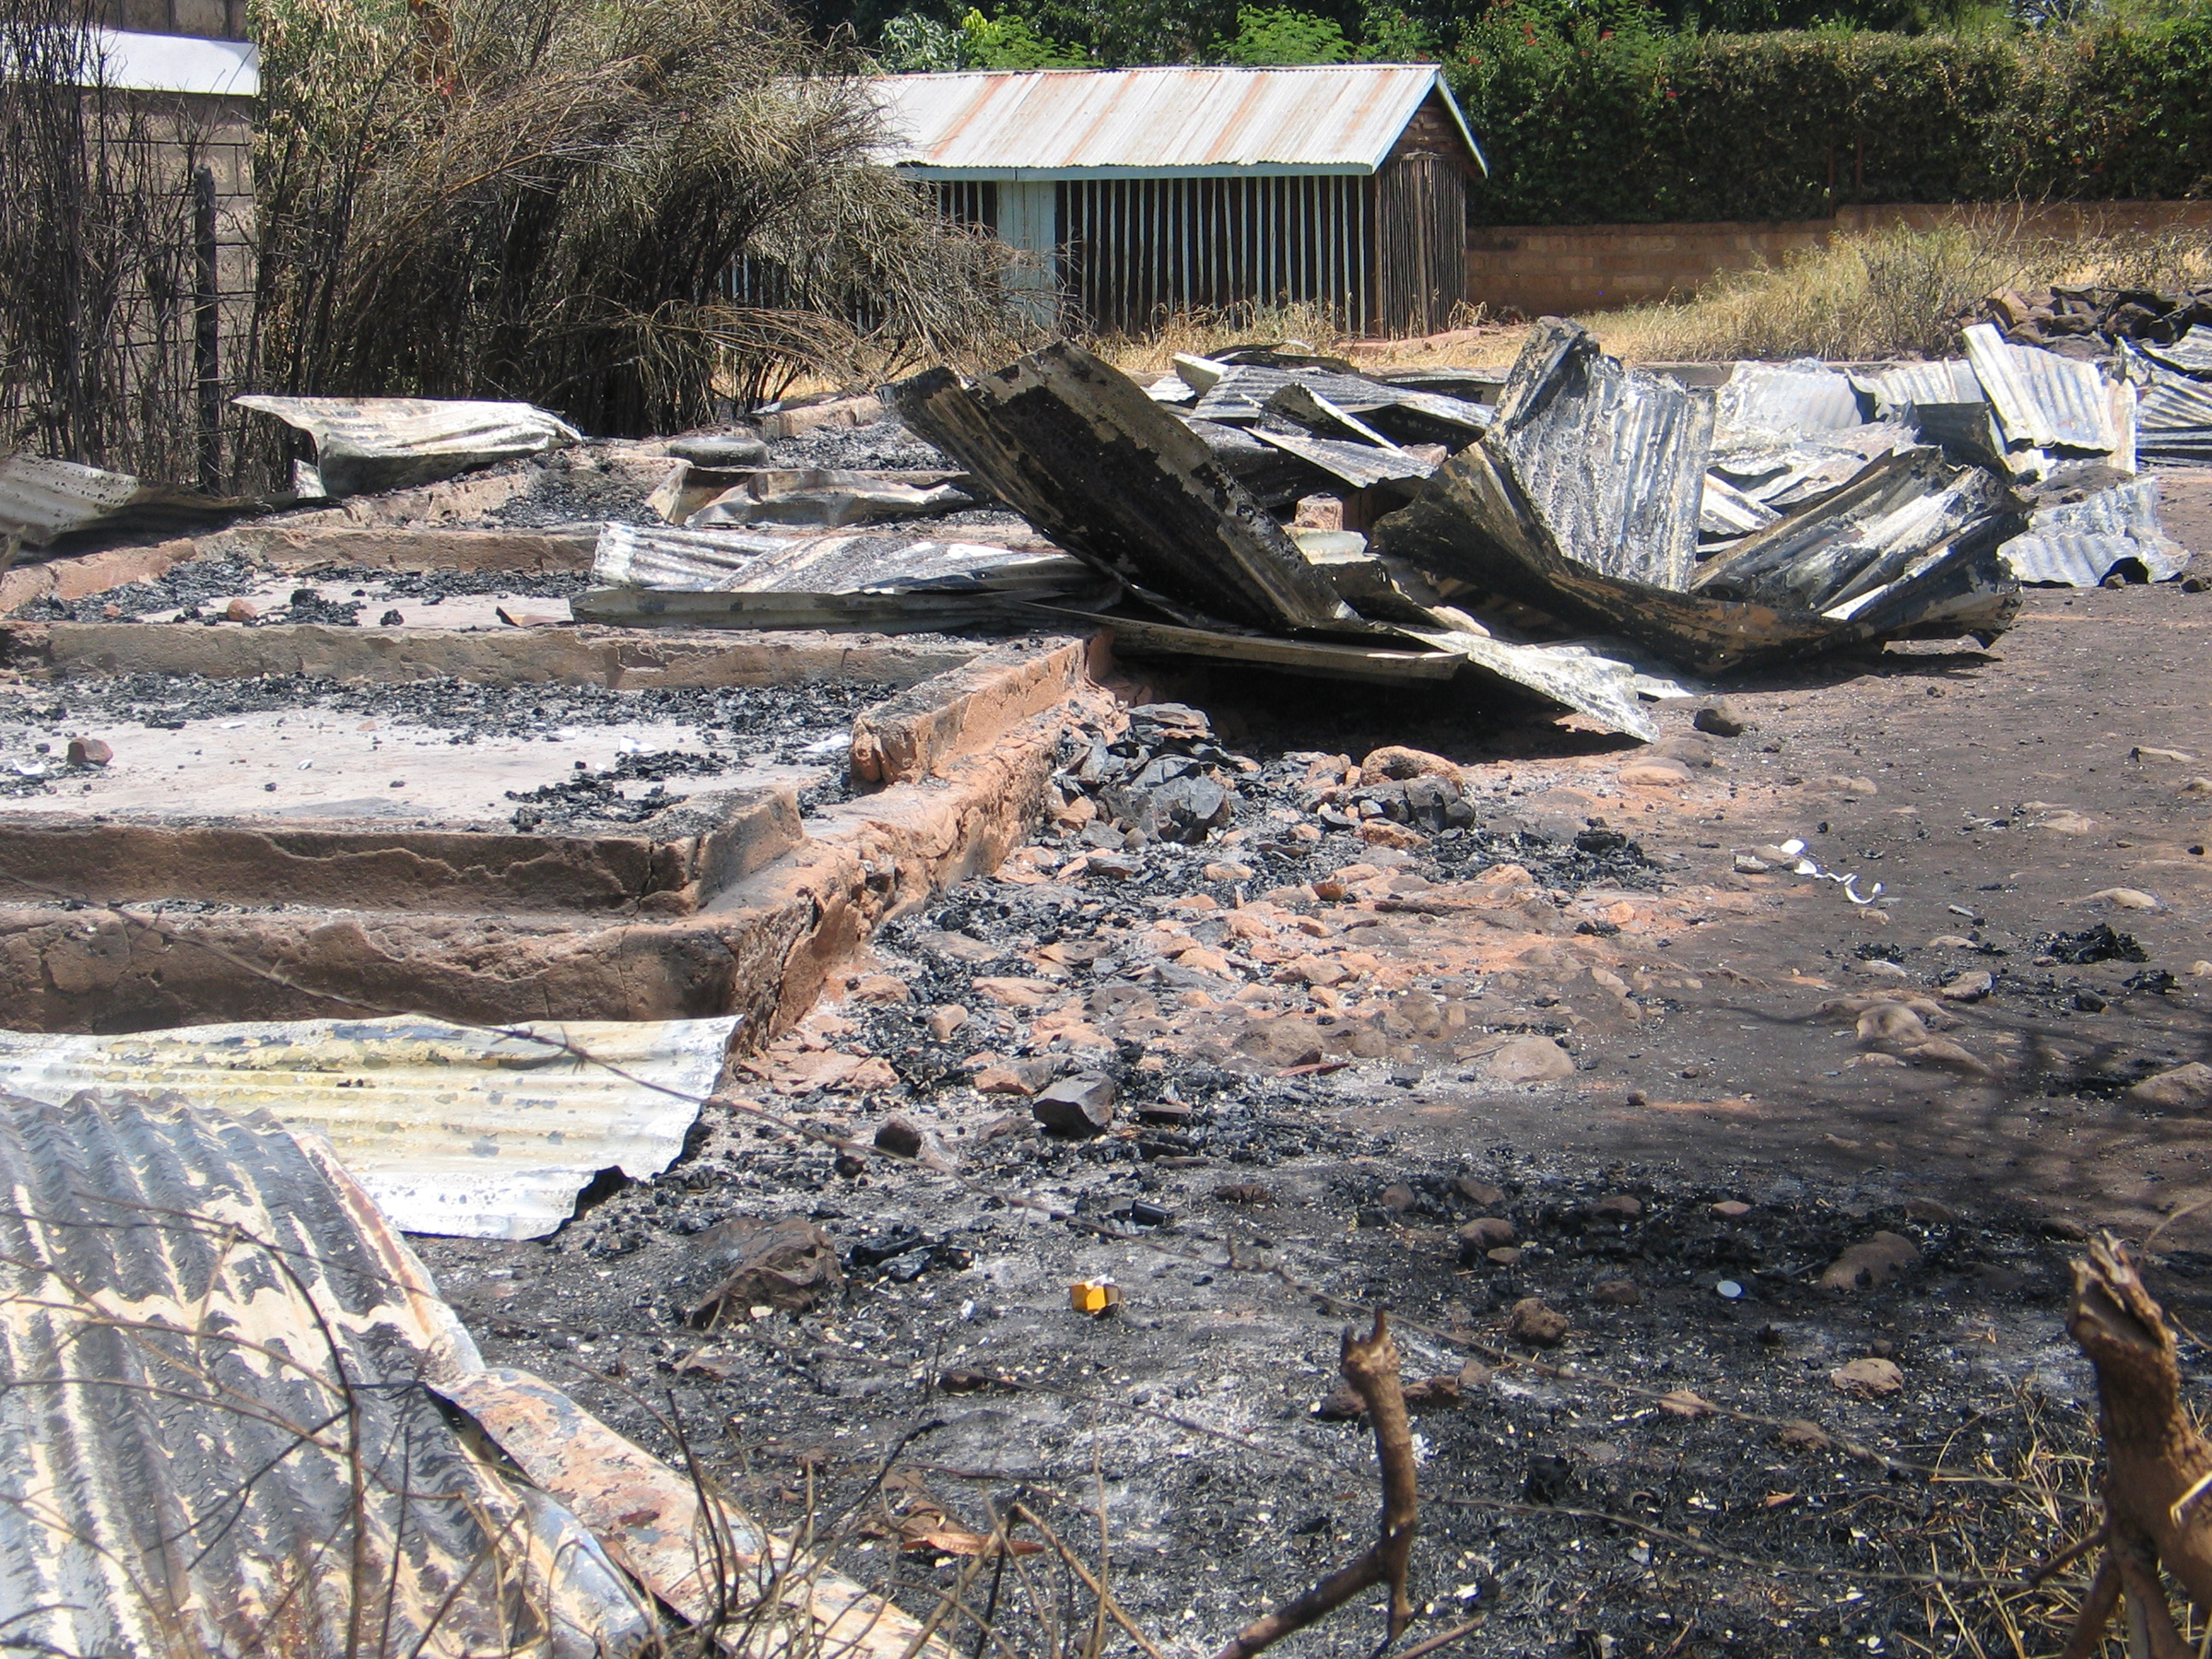 Burnt houses in Isiolo after inter-ethnic clashes